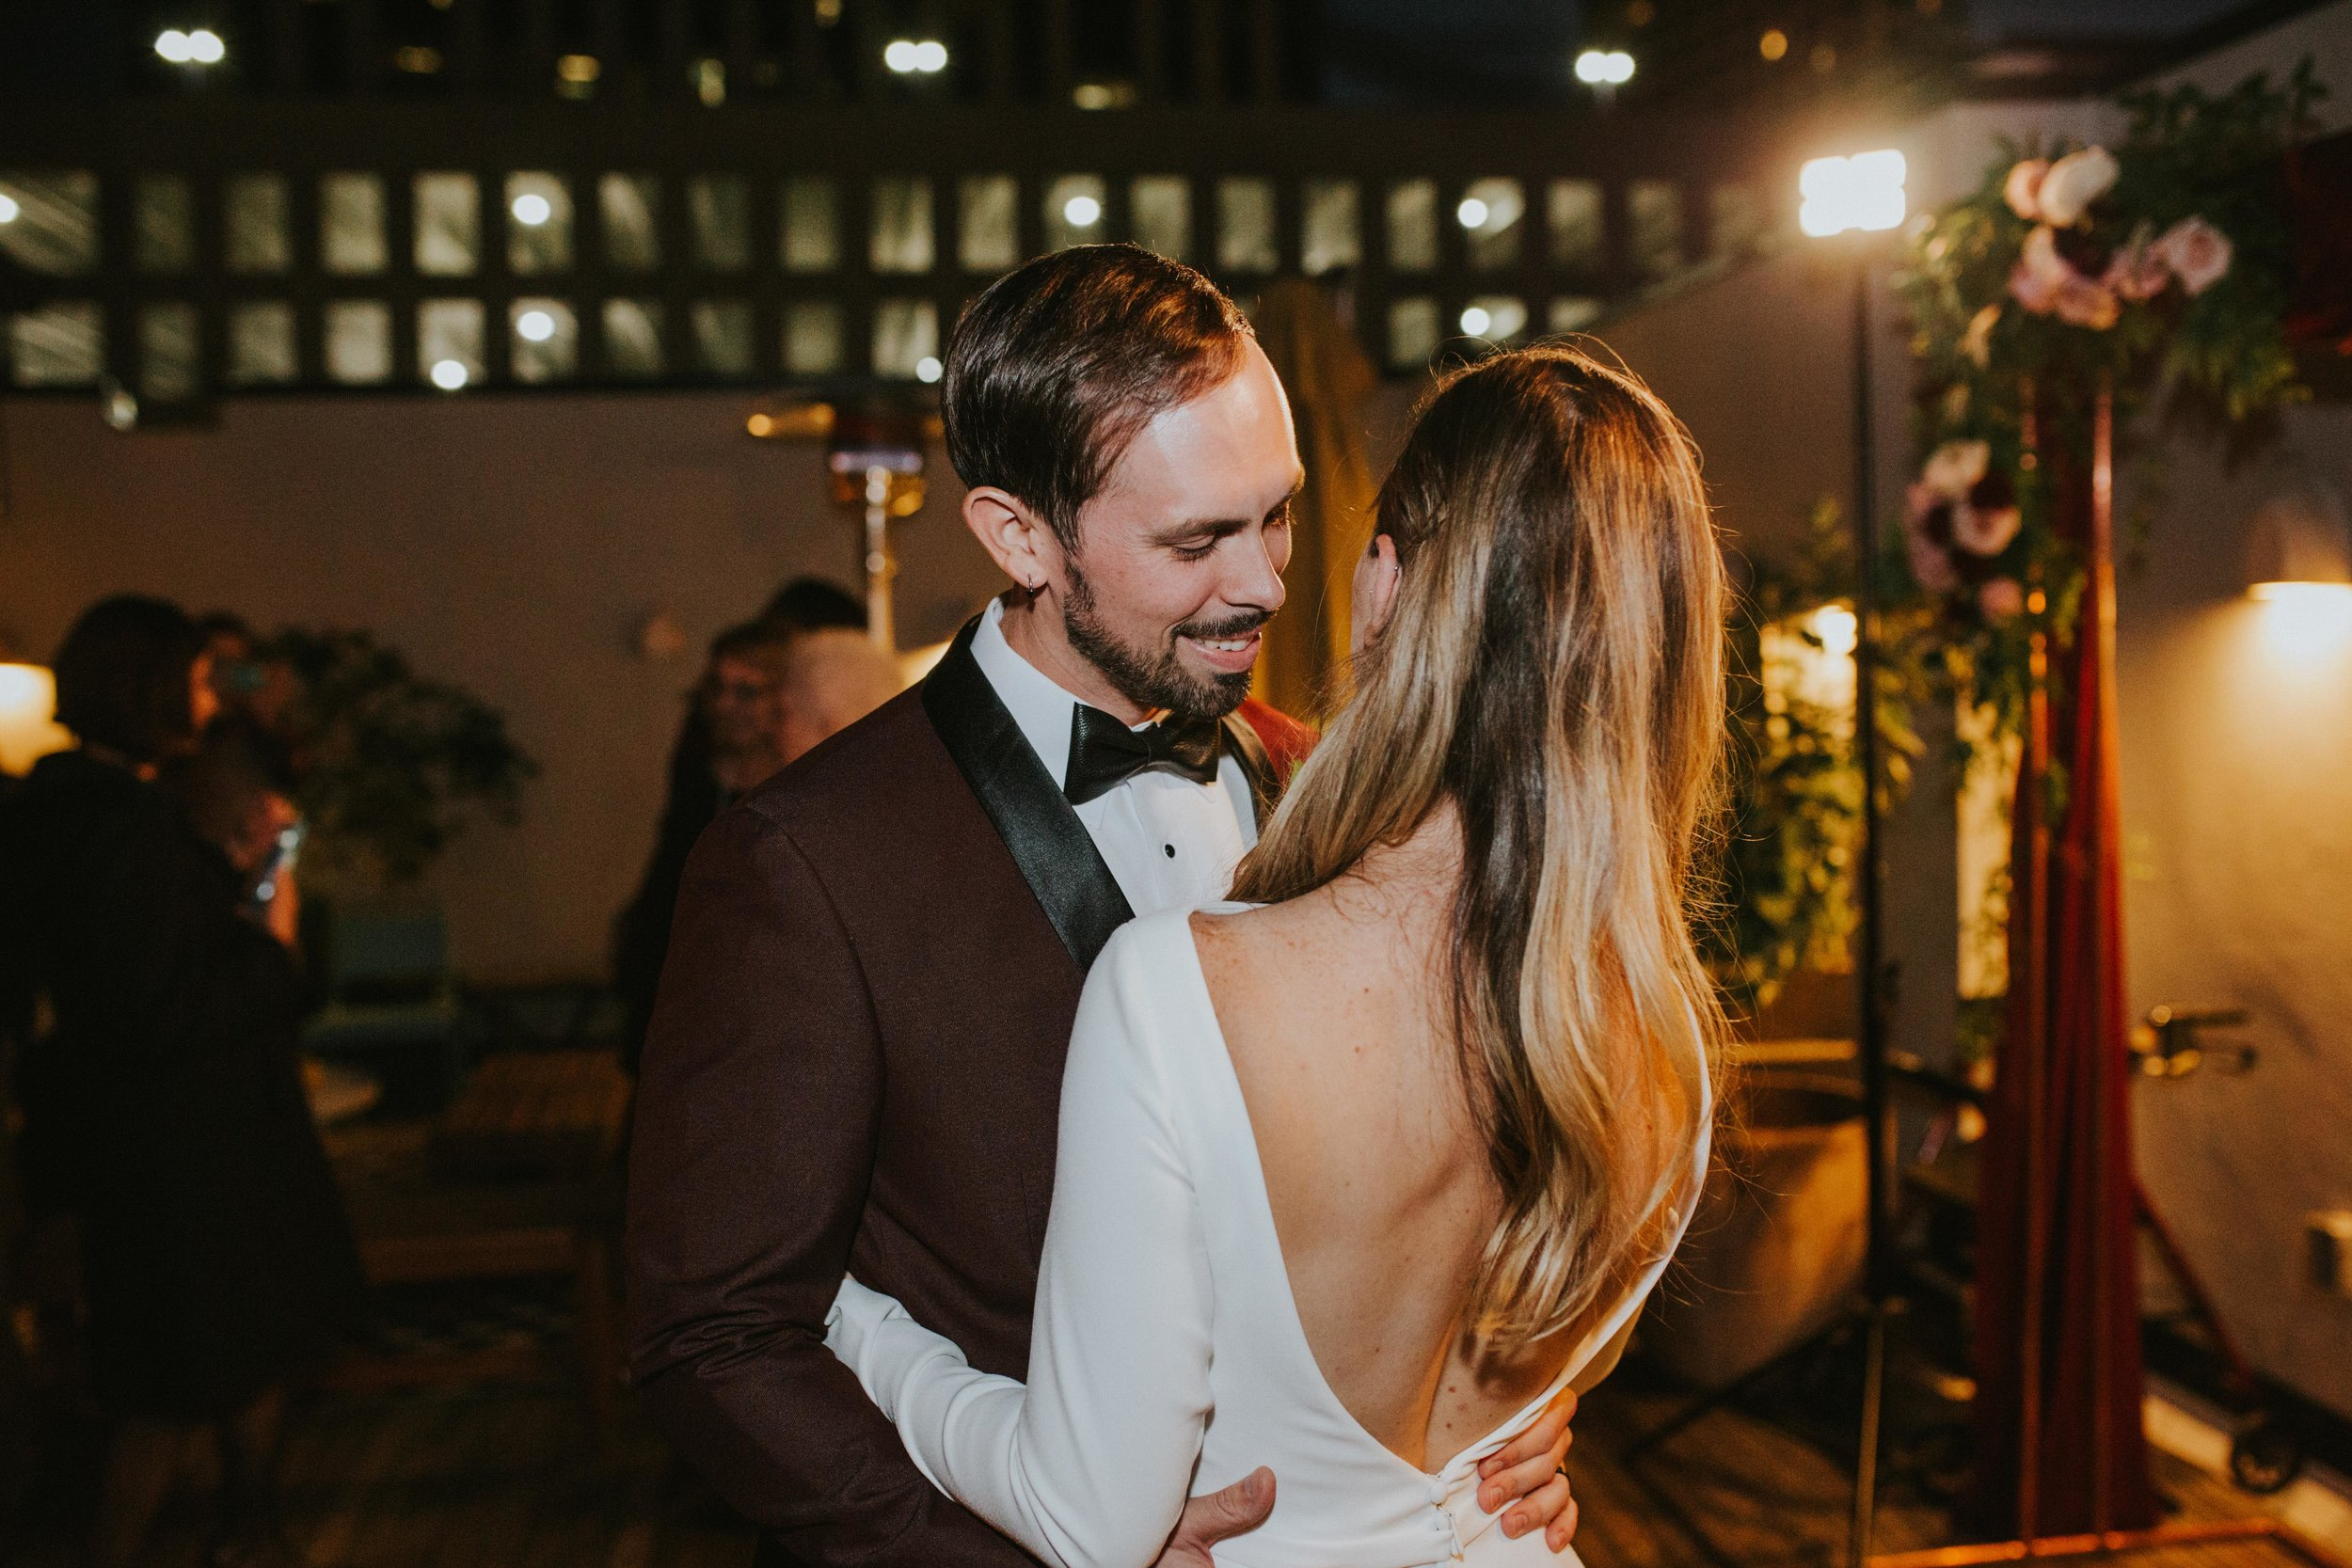 Catahoula Hotel Rooftop Wedding Reception New Orleans Wedding Photographer Ashley Biltz Photography2.jpg